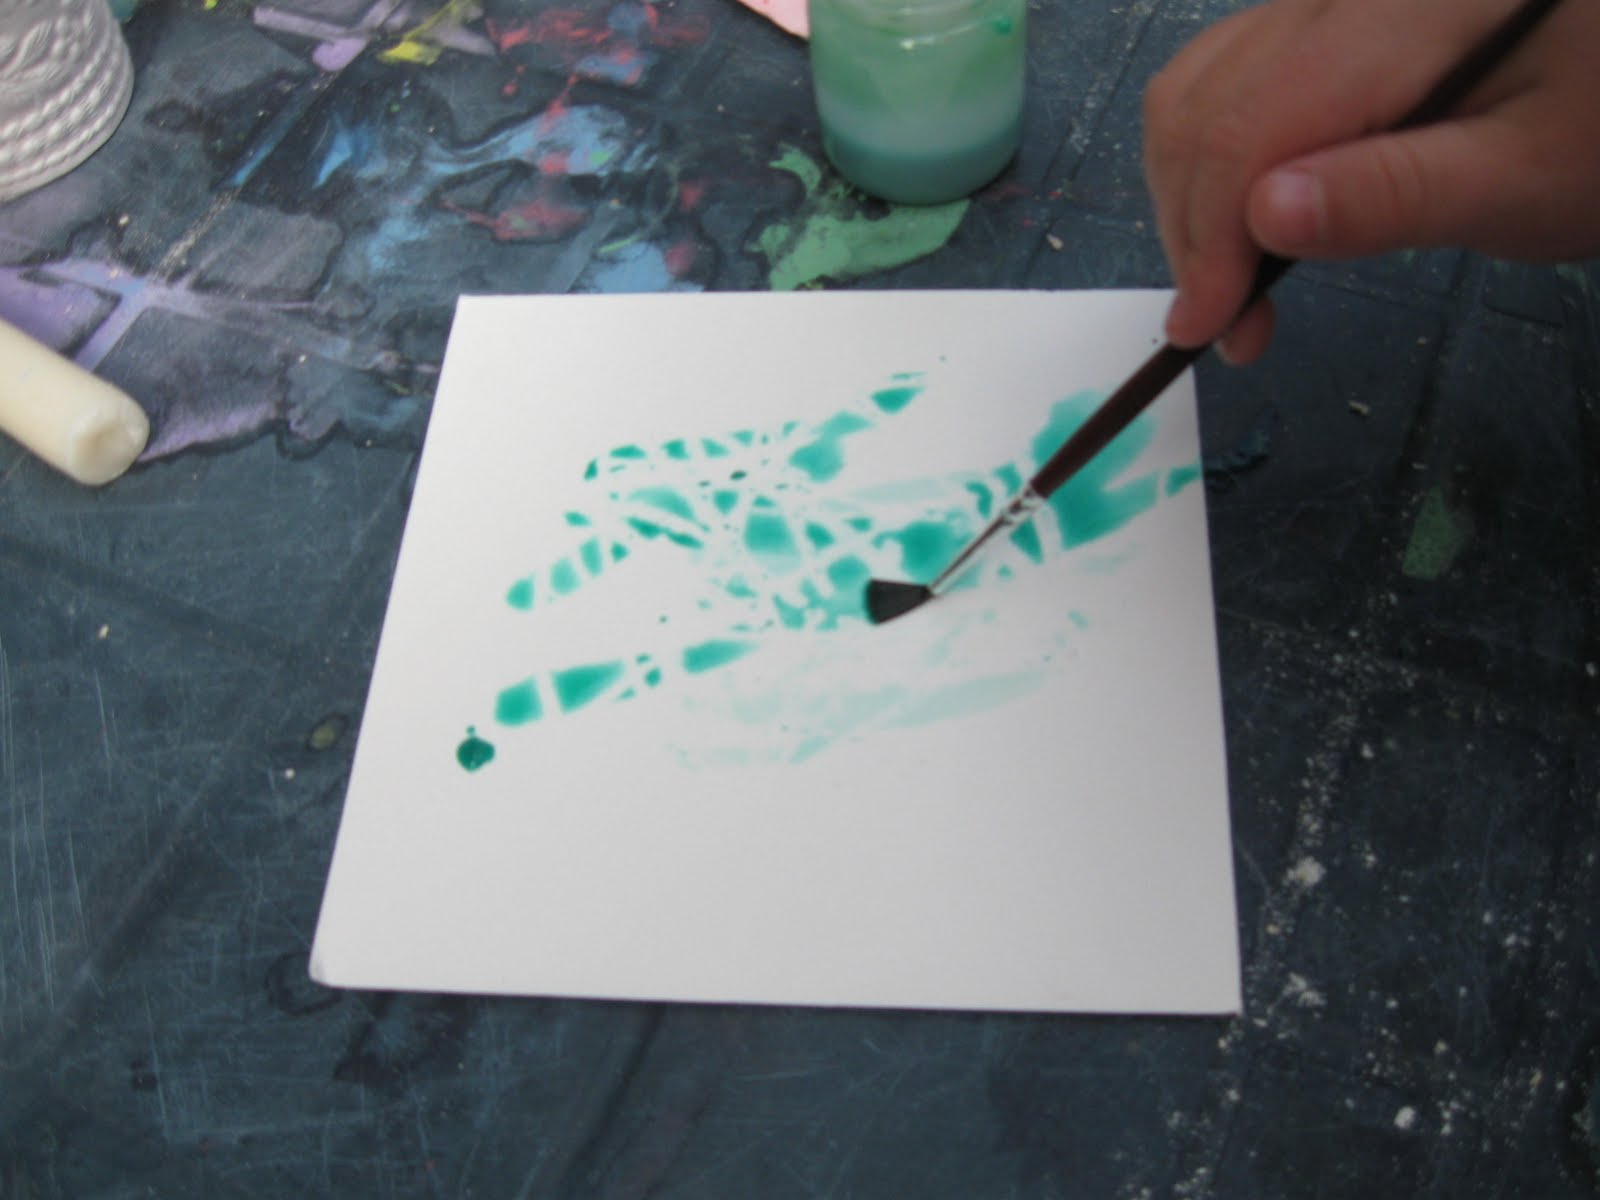 This Activity Involved Us Marking Our Card With White Crayons Then Painting Over Liquid Watercolour Paint And Watching The Magic As What We Had Drawn